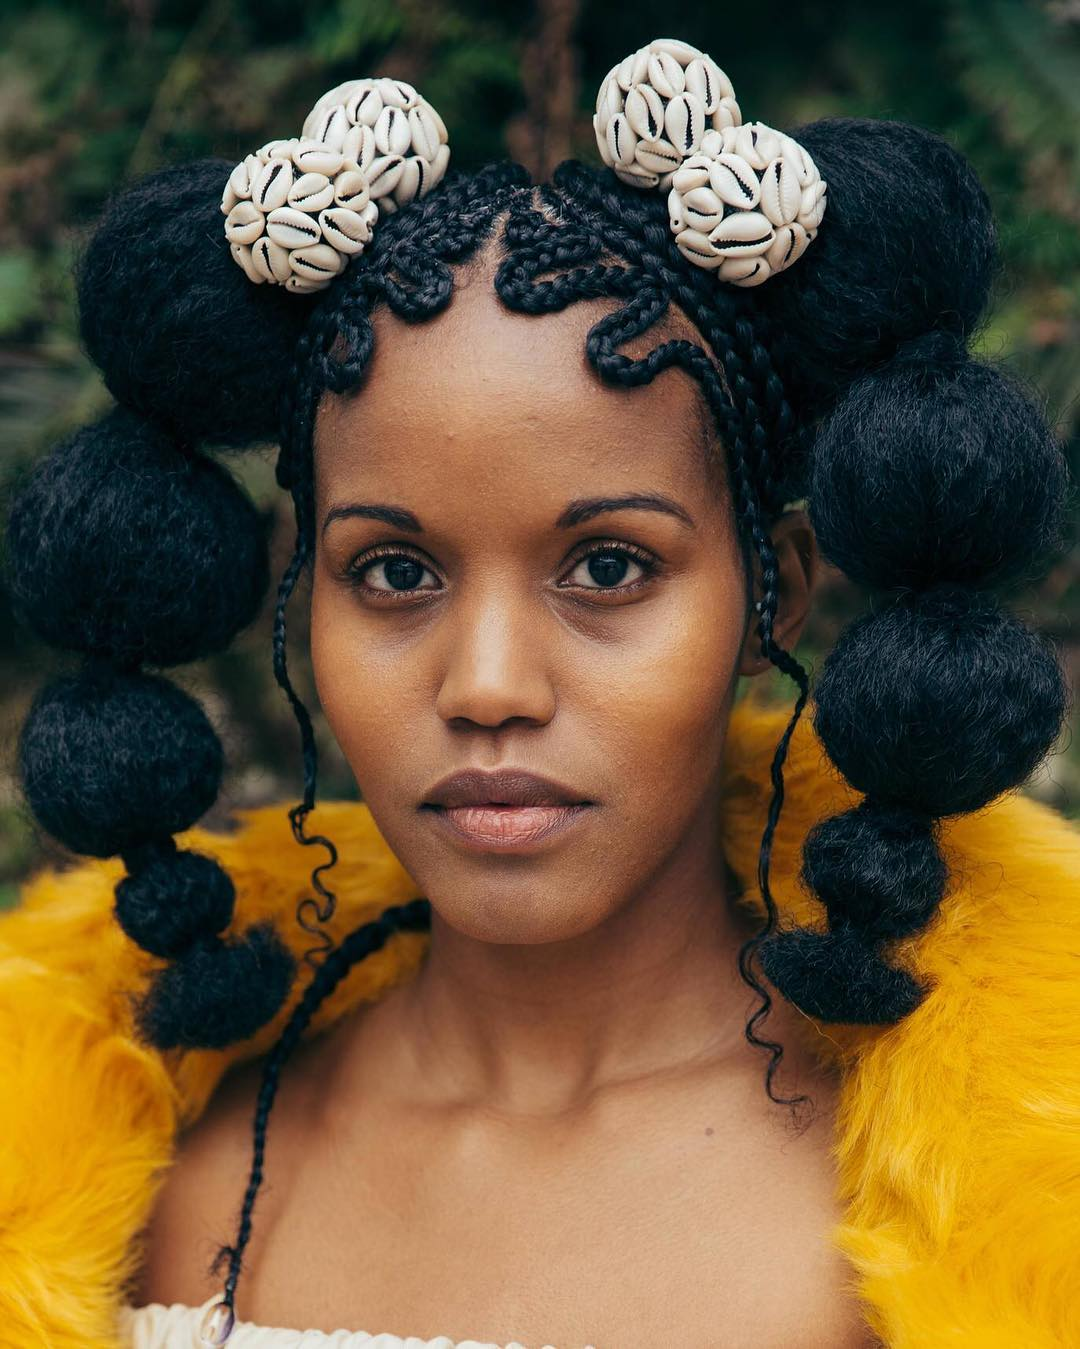 Braid Hairstyles For Black Girls: Shani Crowe: The Braid Queen Who Turns Hair Into Art